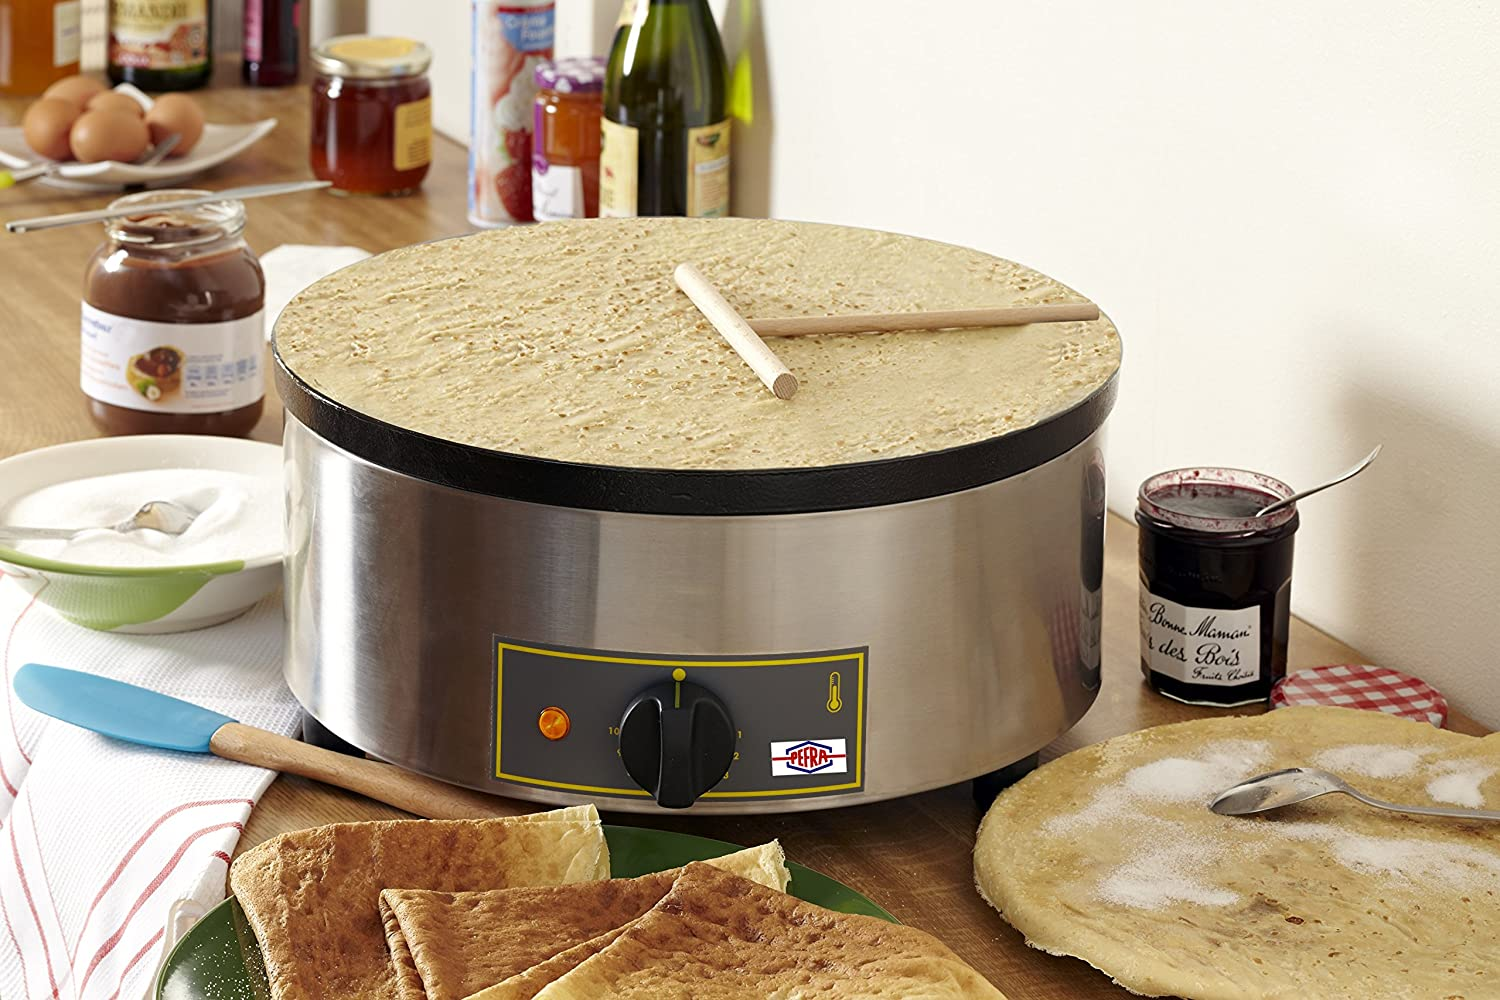 Image of Crepe Makers Equipex 400FE Sodir 15.75-Inch Single Crepe Maker/Machine with Cast Iron Plate, 240v